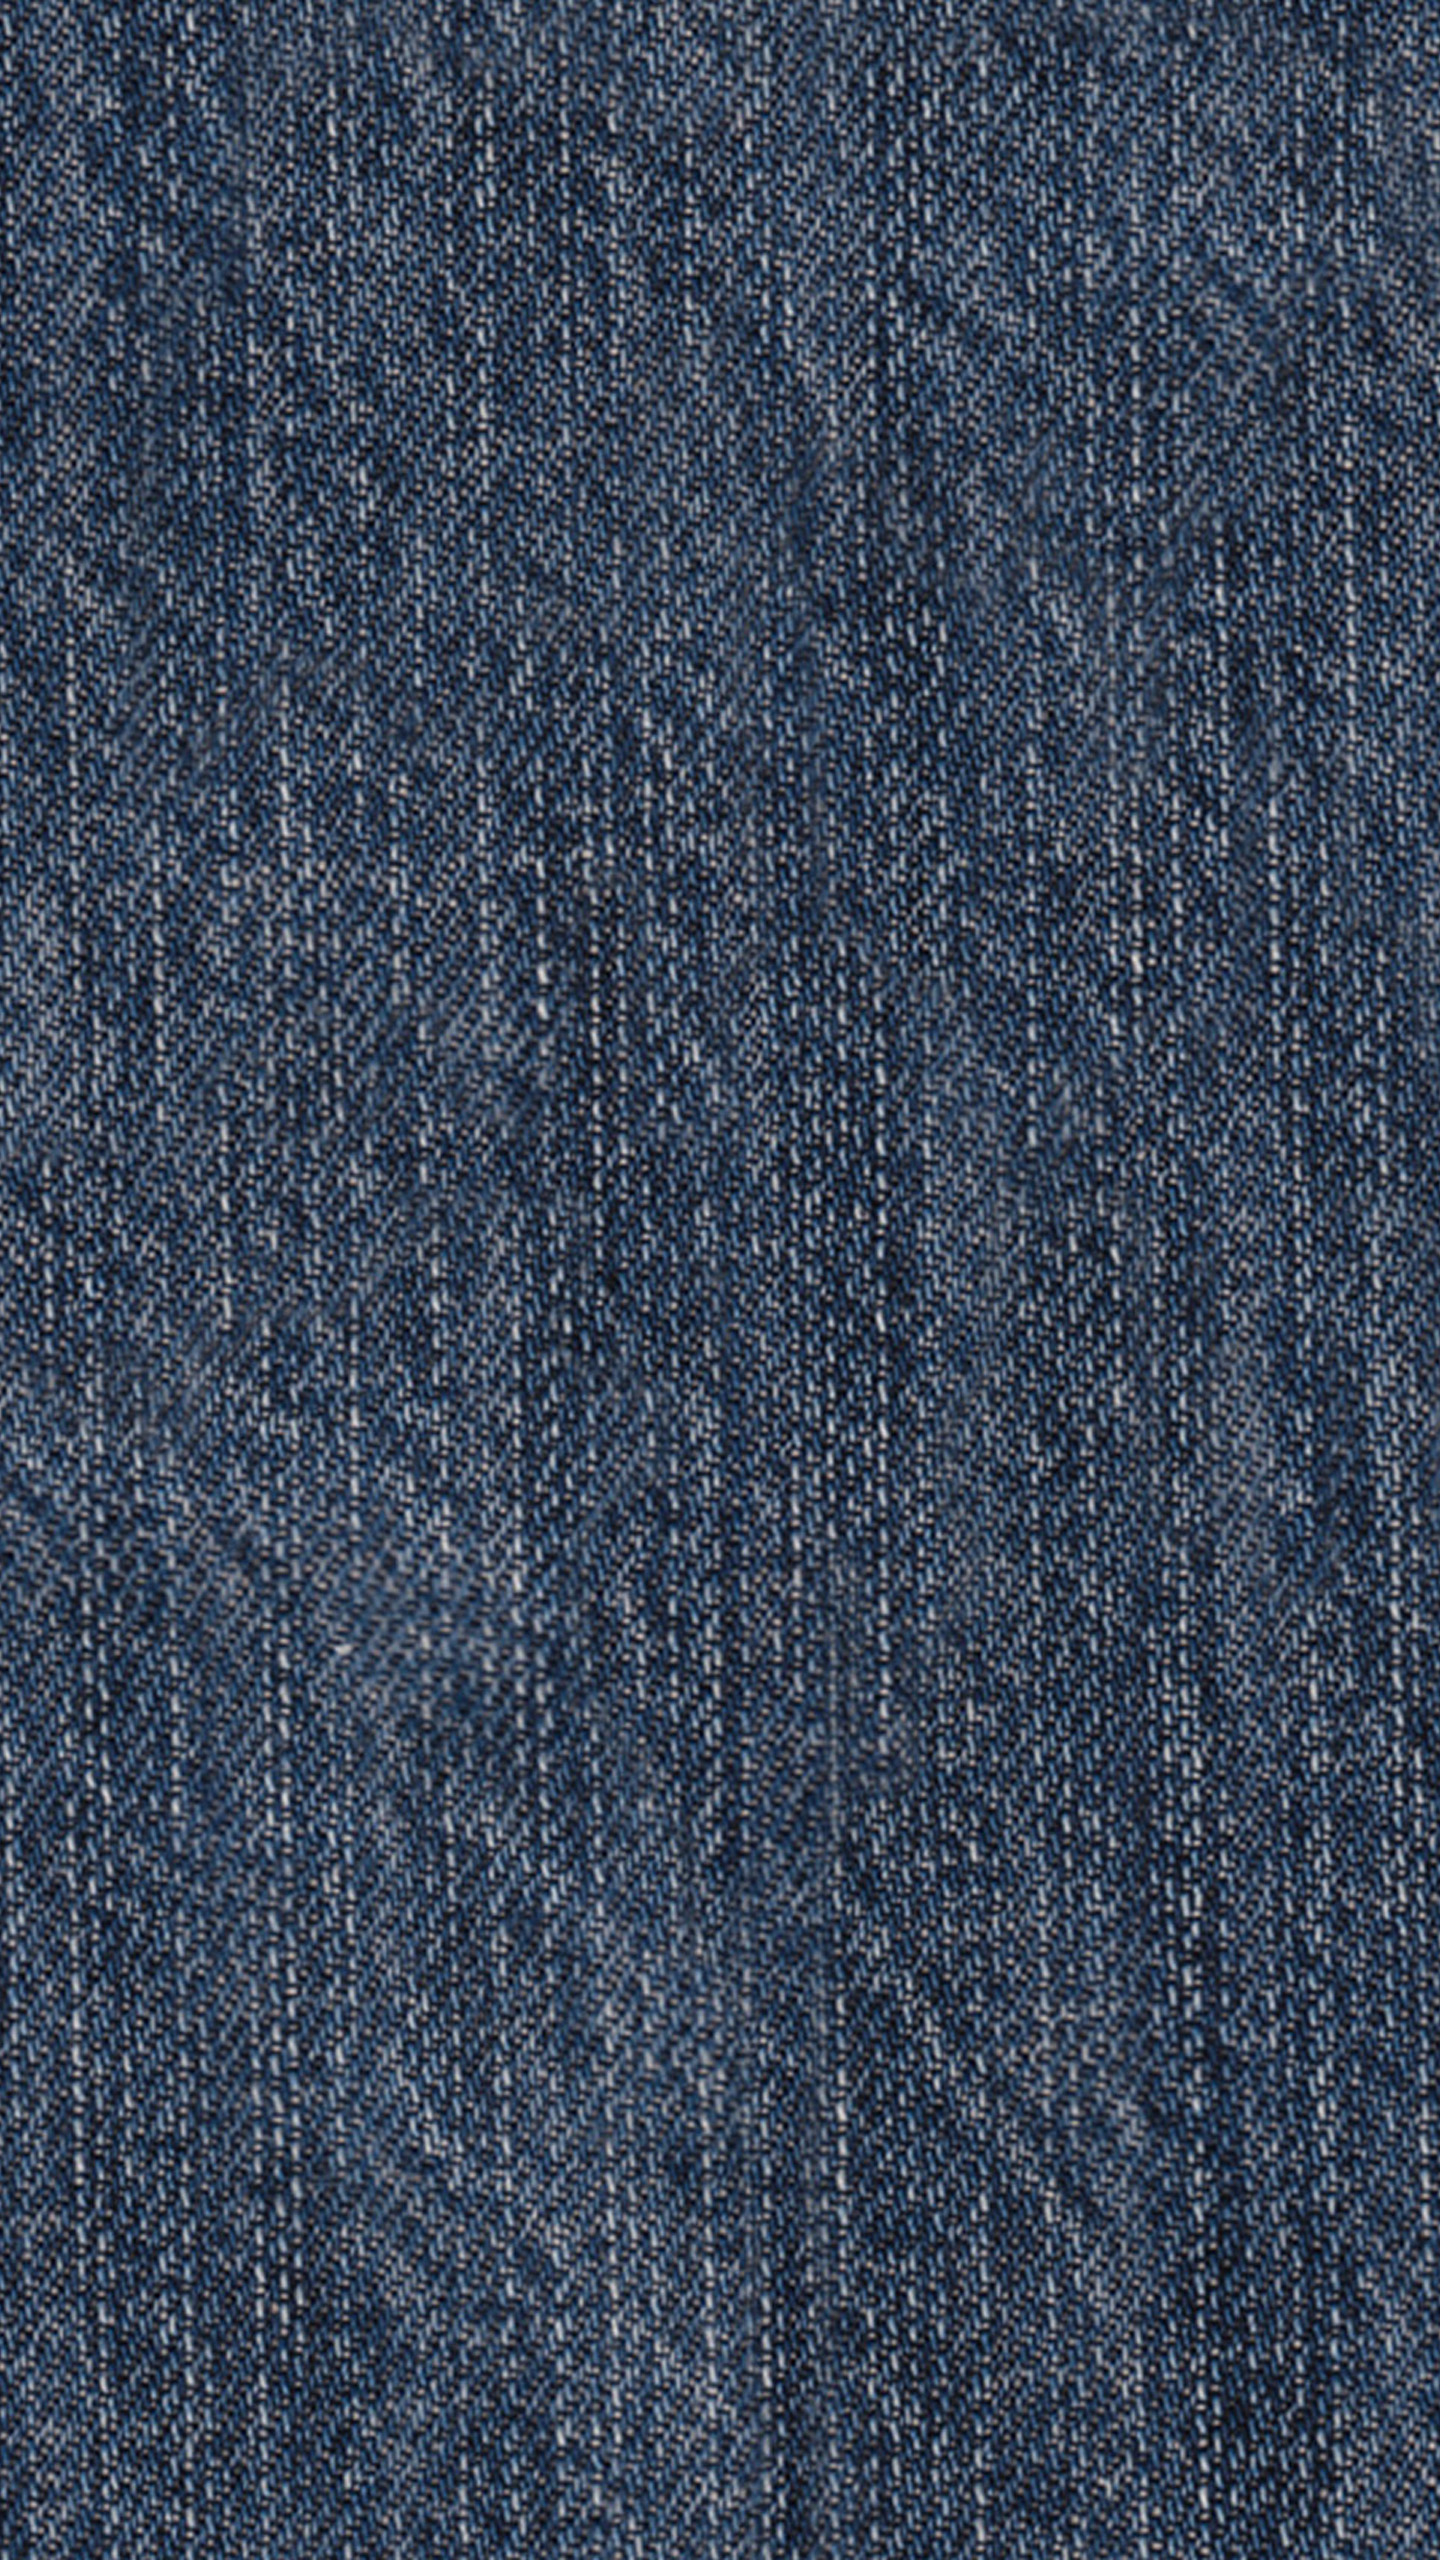 microsoft lumia 950 xl wallpapers denim android wallpapers